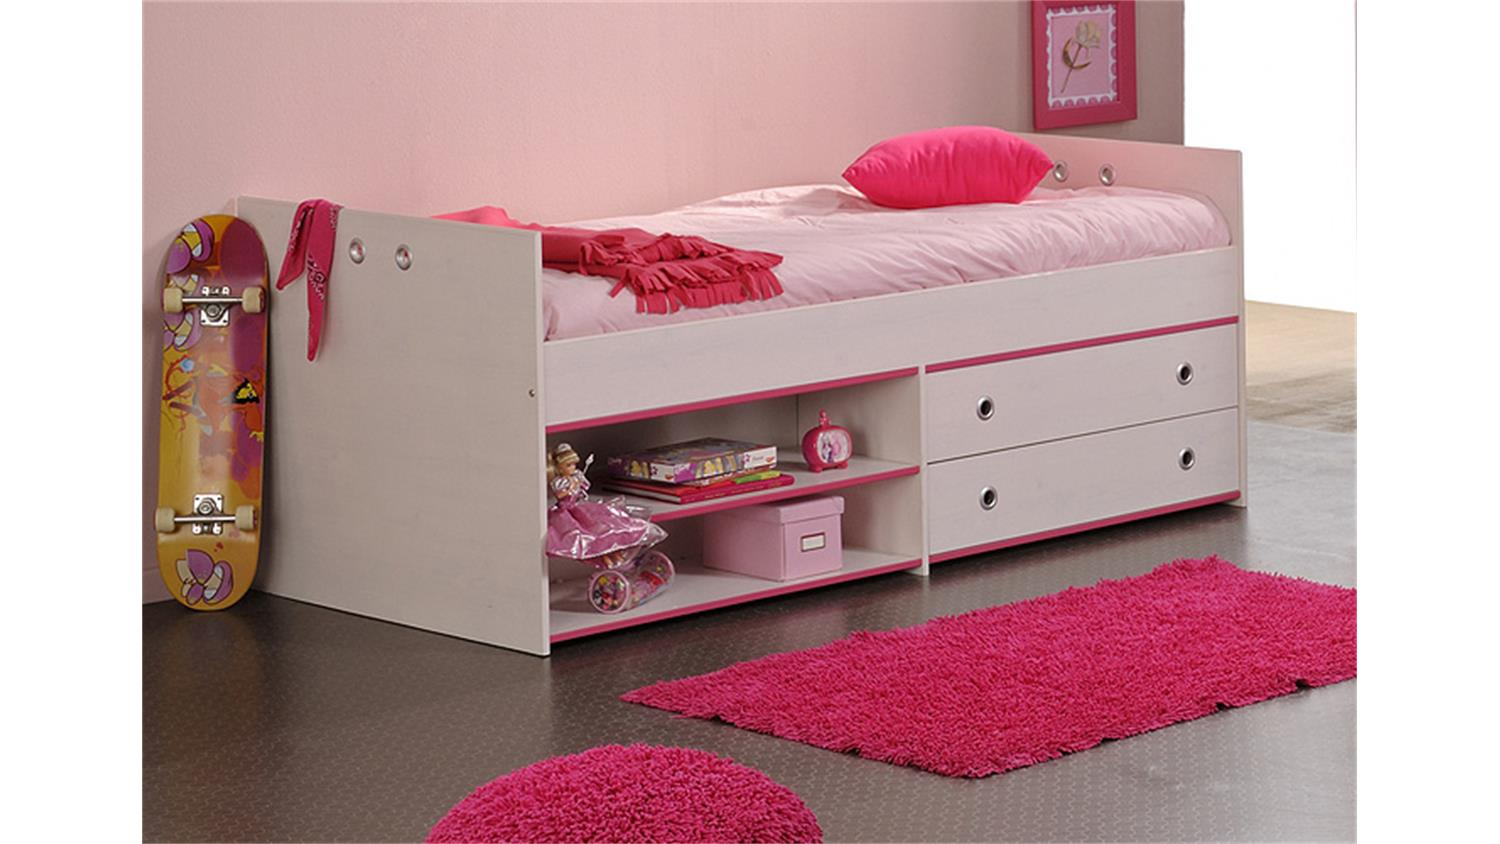 kinderbett smoozy 5 bett 90x200 in kiefer wei drehbare. Black Bedroom Furniture Sets. Home Design Ideas